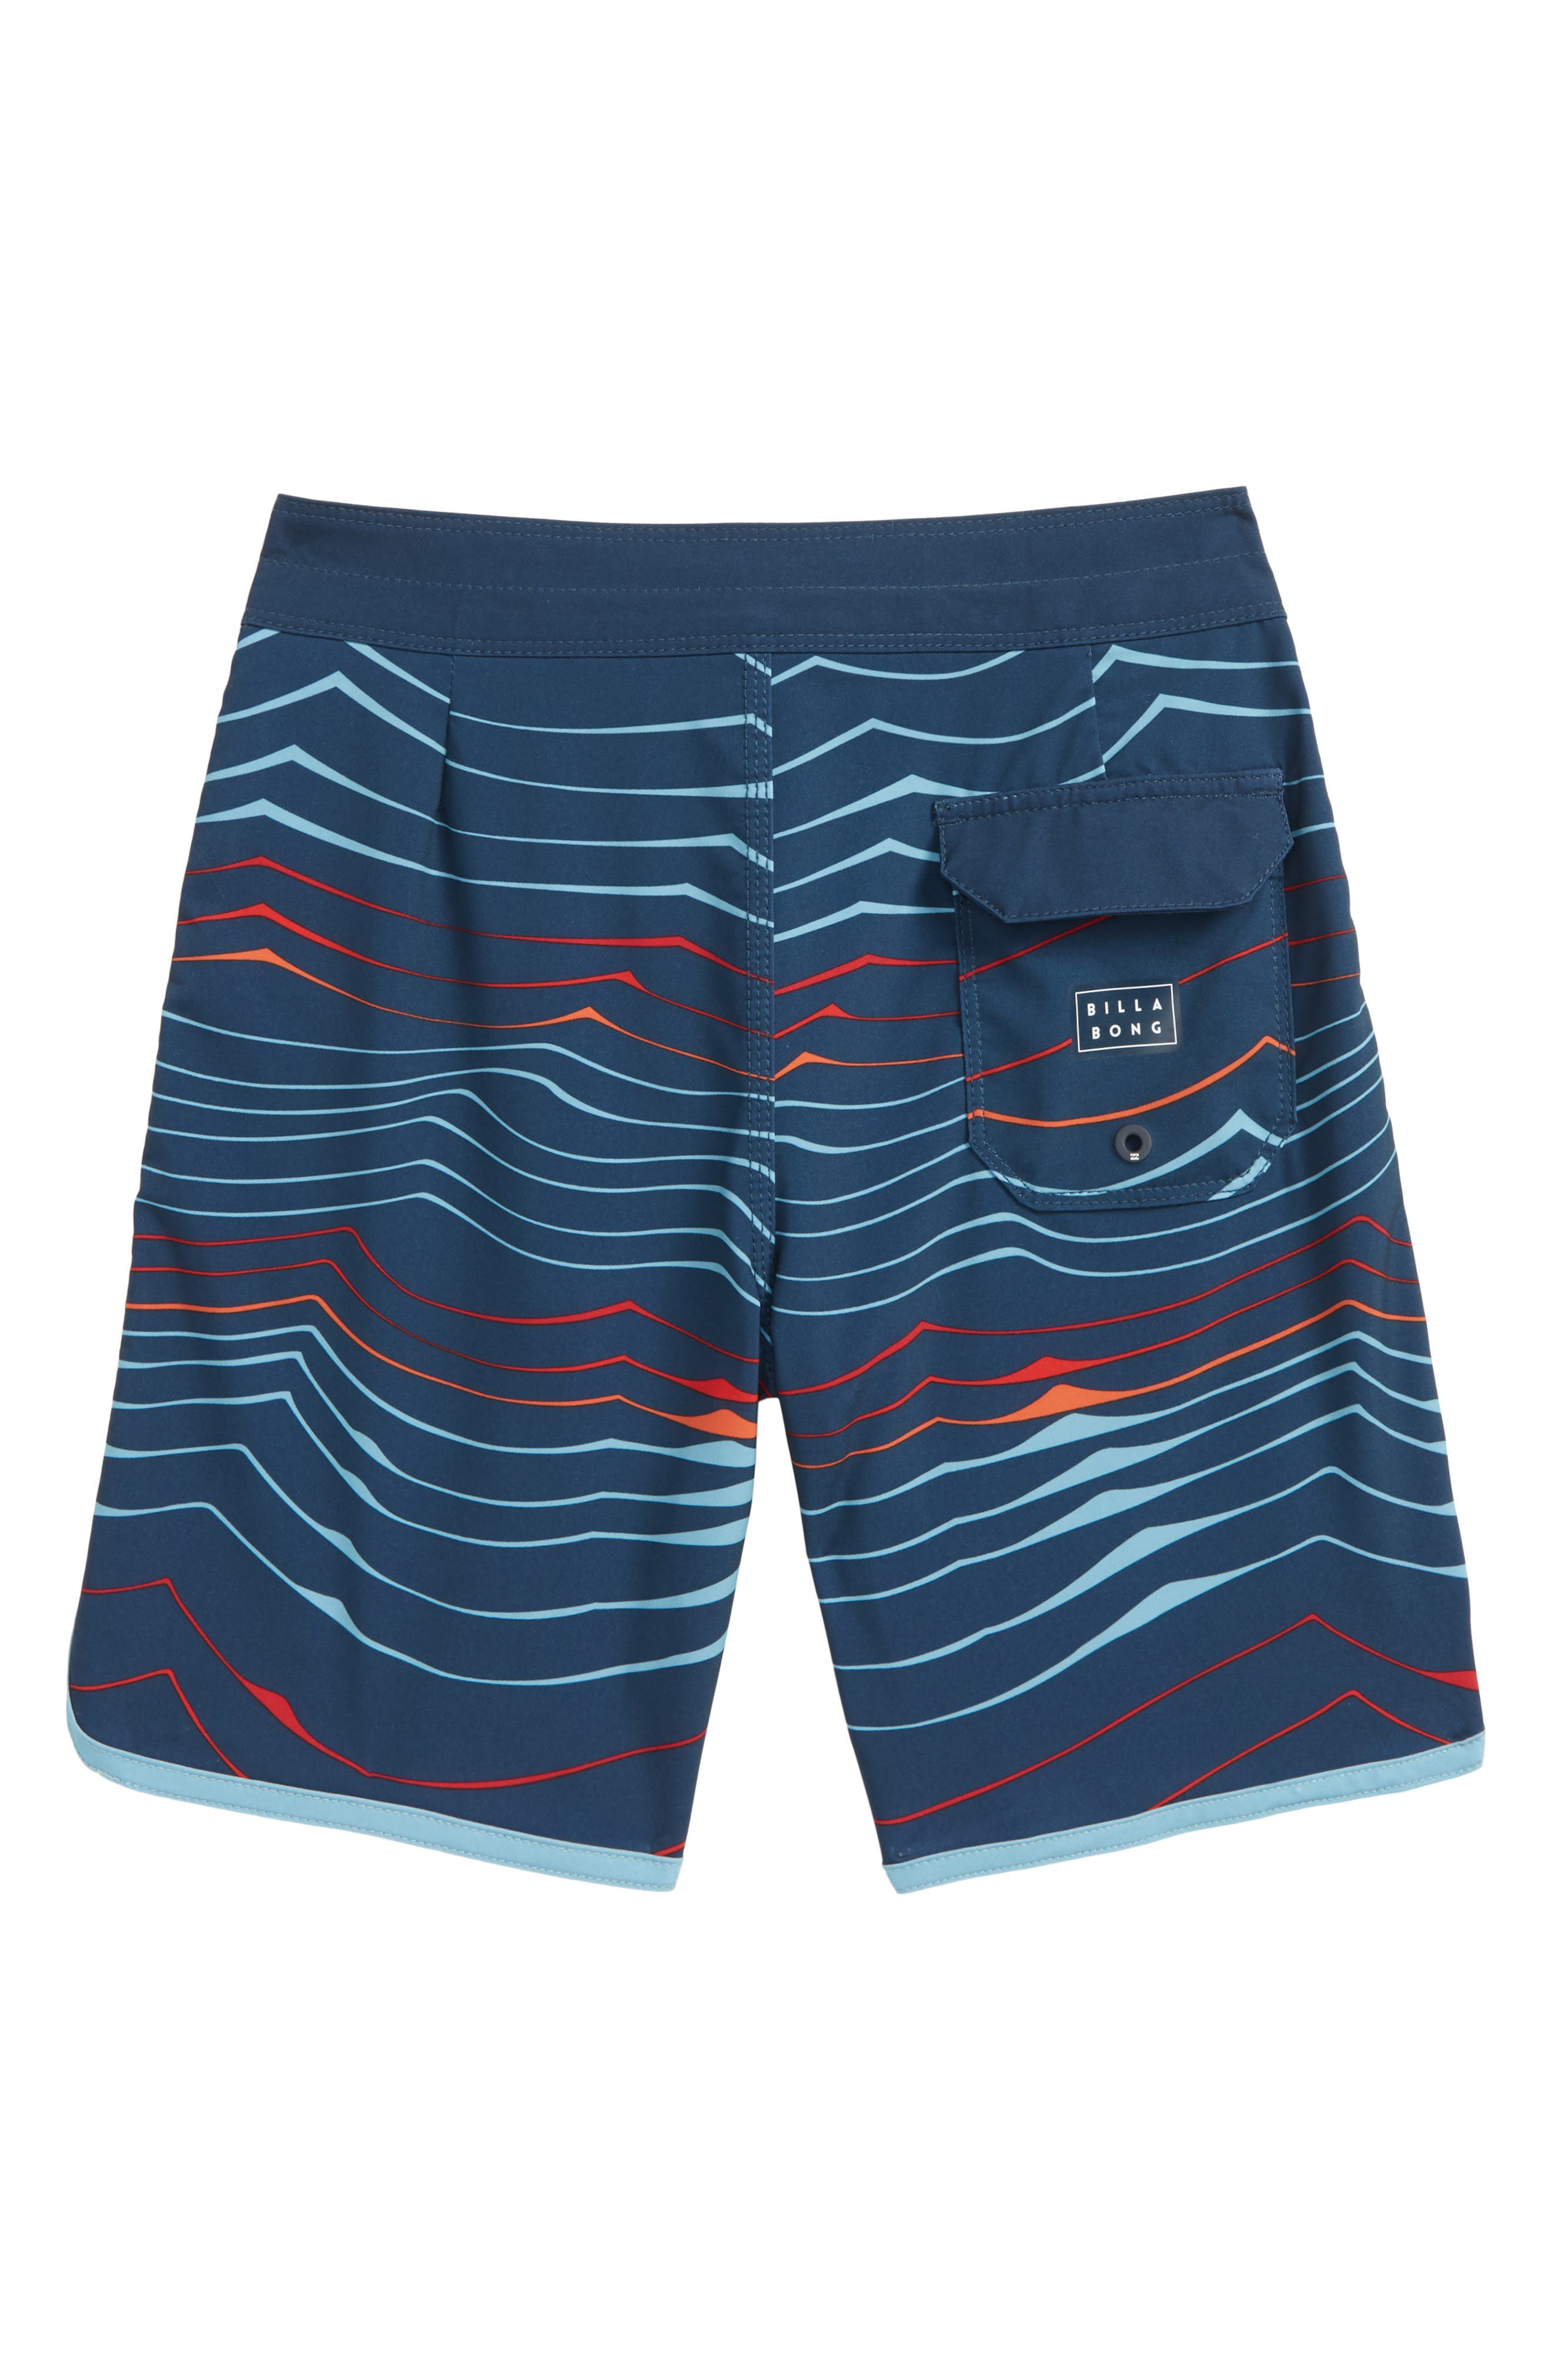 73 X Line Up Board Shorts,                             Alternate thumbnail 2, color,                             Navy